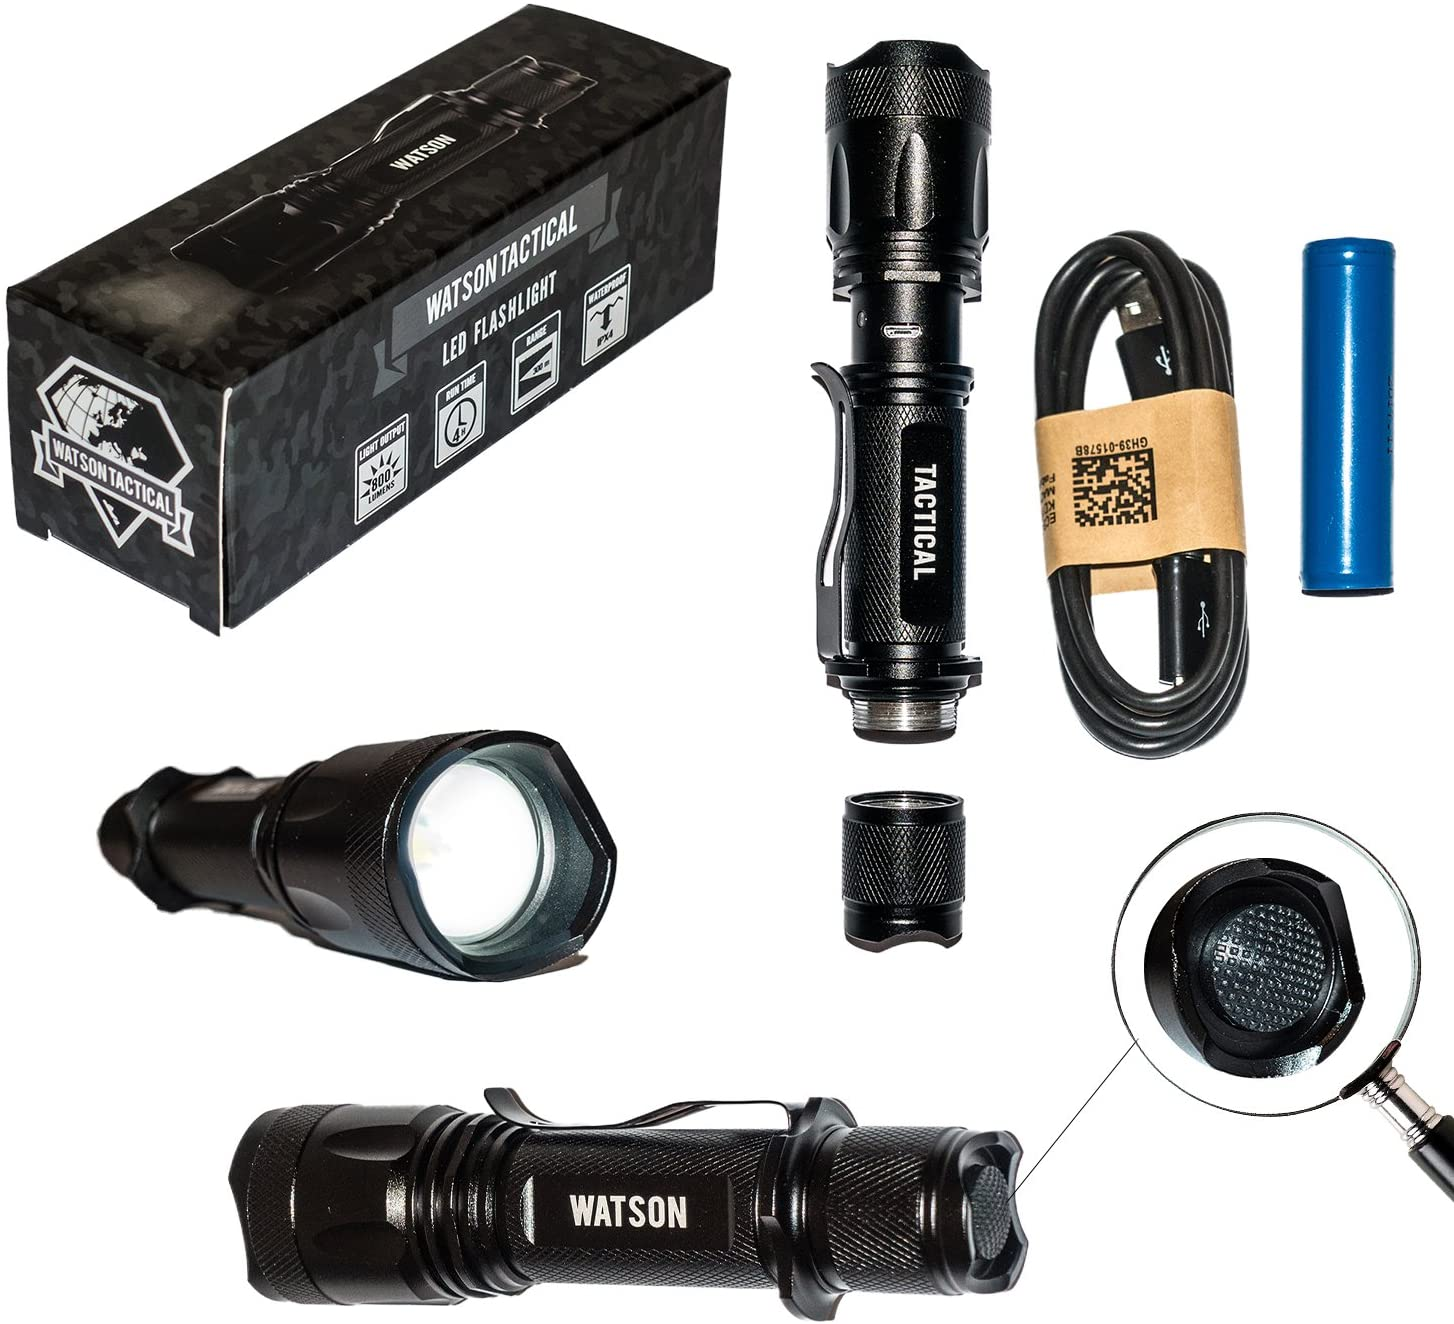 Watson T1000 Tactical LED Flashlight with Super Bright True 800 Lumen Light Output CREE LED, 5 Light Output Modes, Zoomable, USB Rechargable, Weather Resistant, 18650 Battery Included